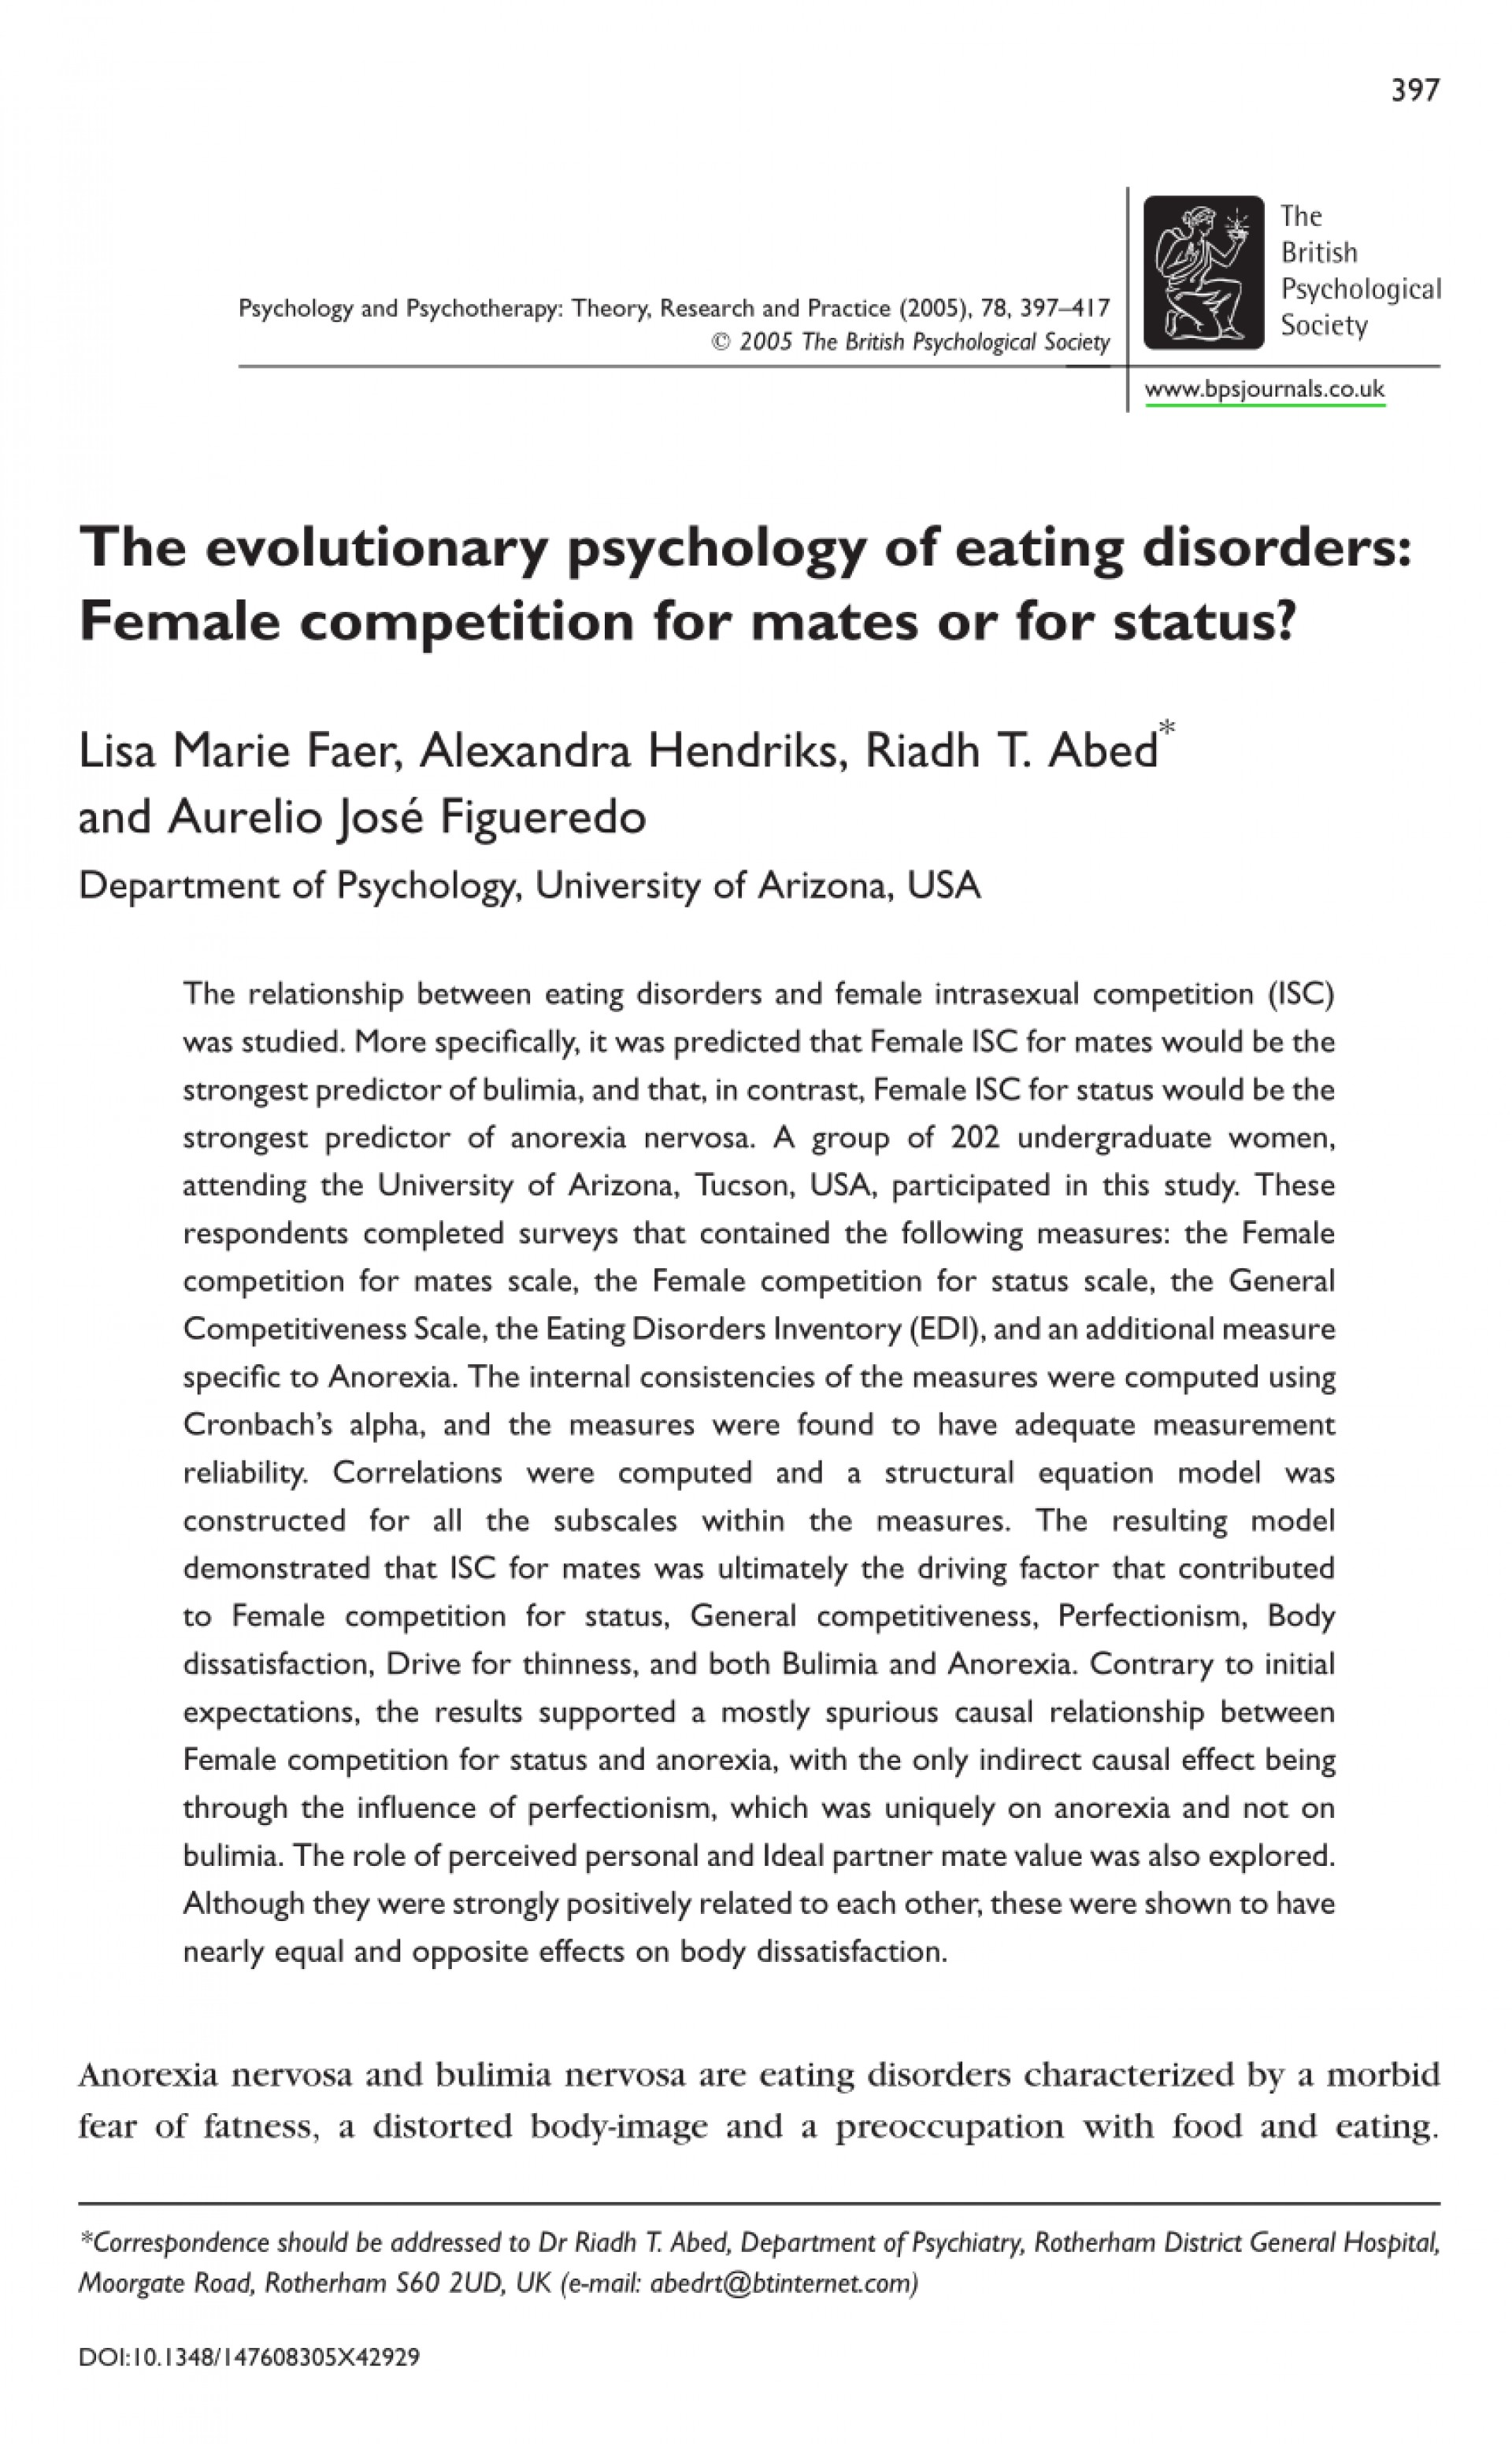 006 Psychology Research Paper On Eating Disorders Top Study Topics 1920